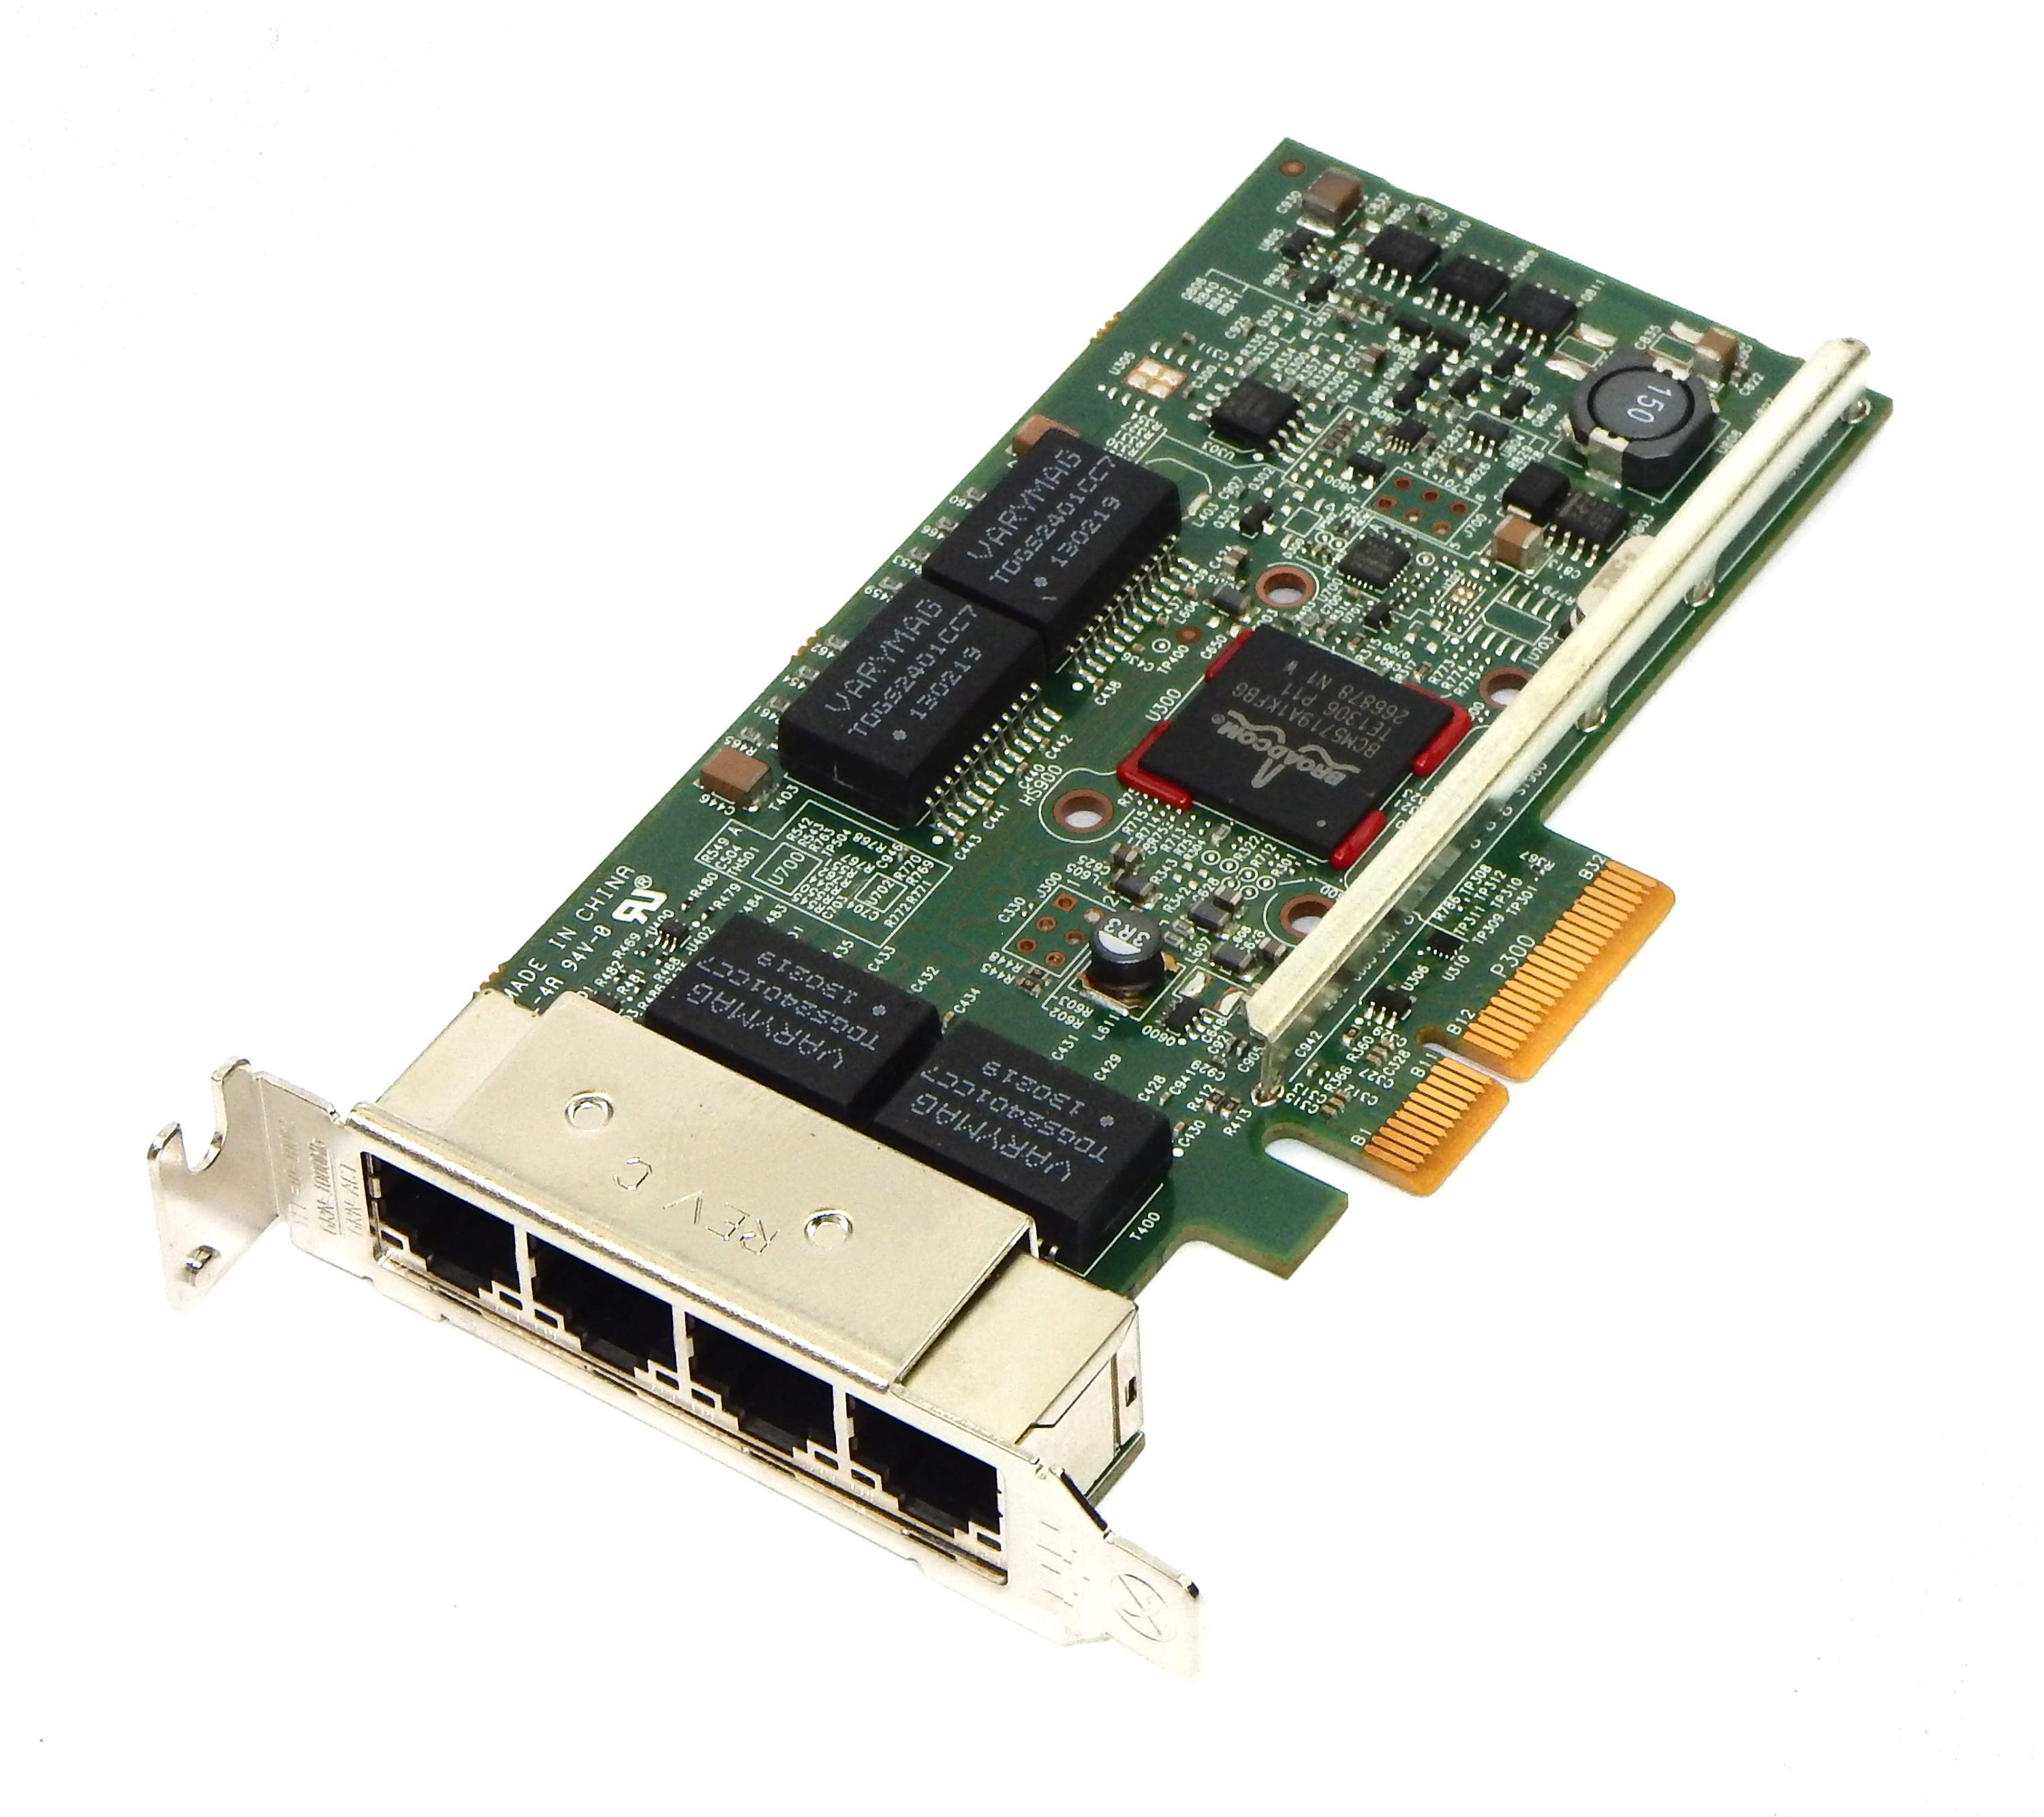 Dell TMGR6 Broadcom BCM5719 4 Port Gigabit Ethernet Card / Low Profile